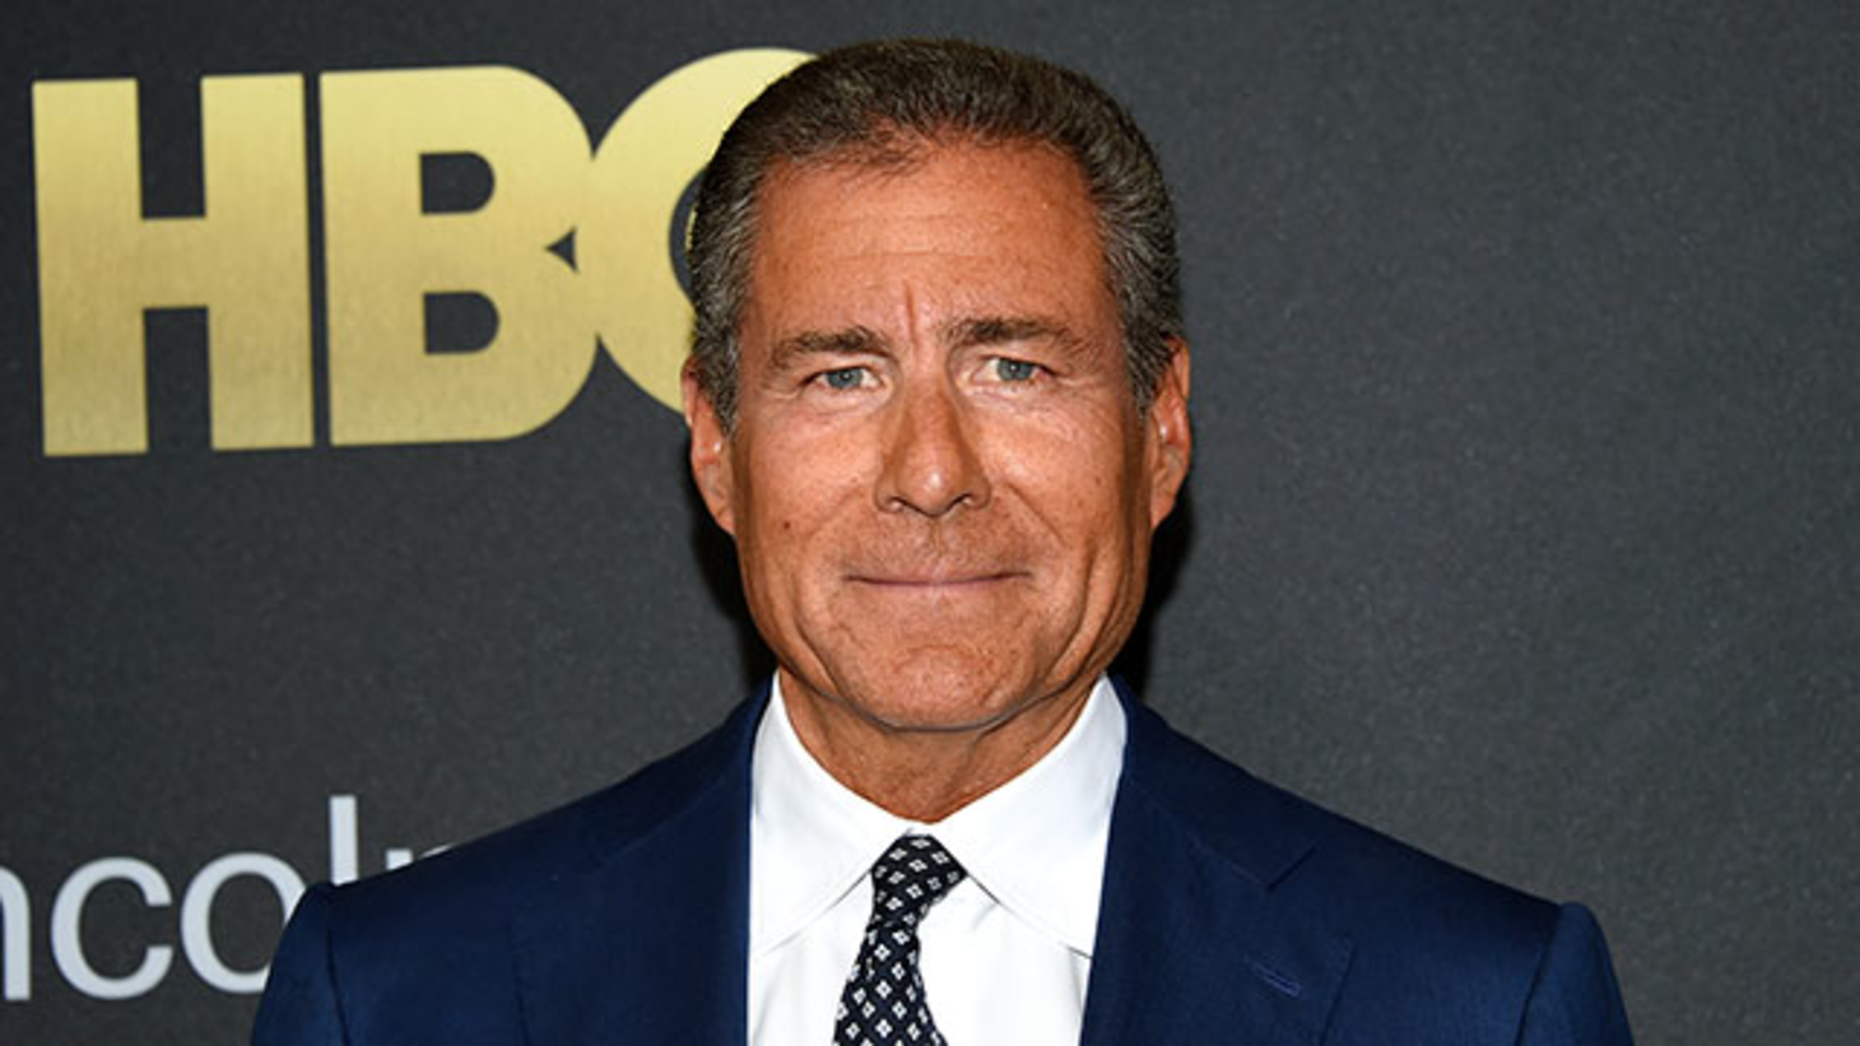 HBO CEO Richard Plepler. Photo: AP